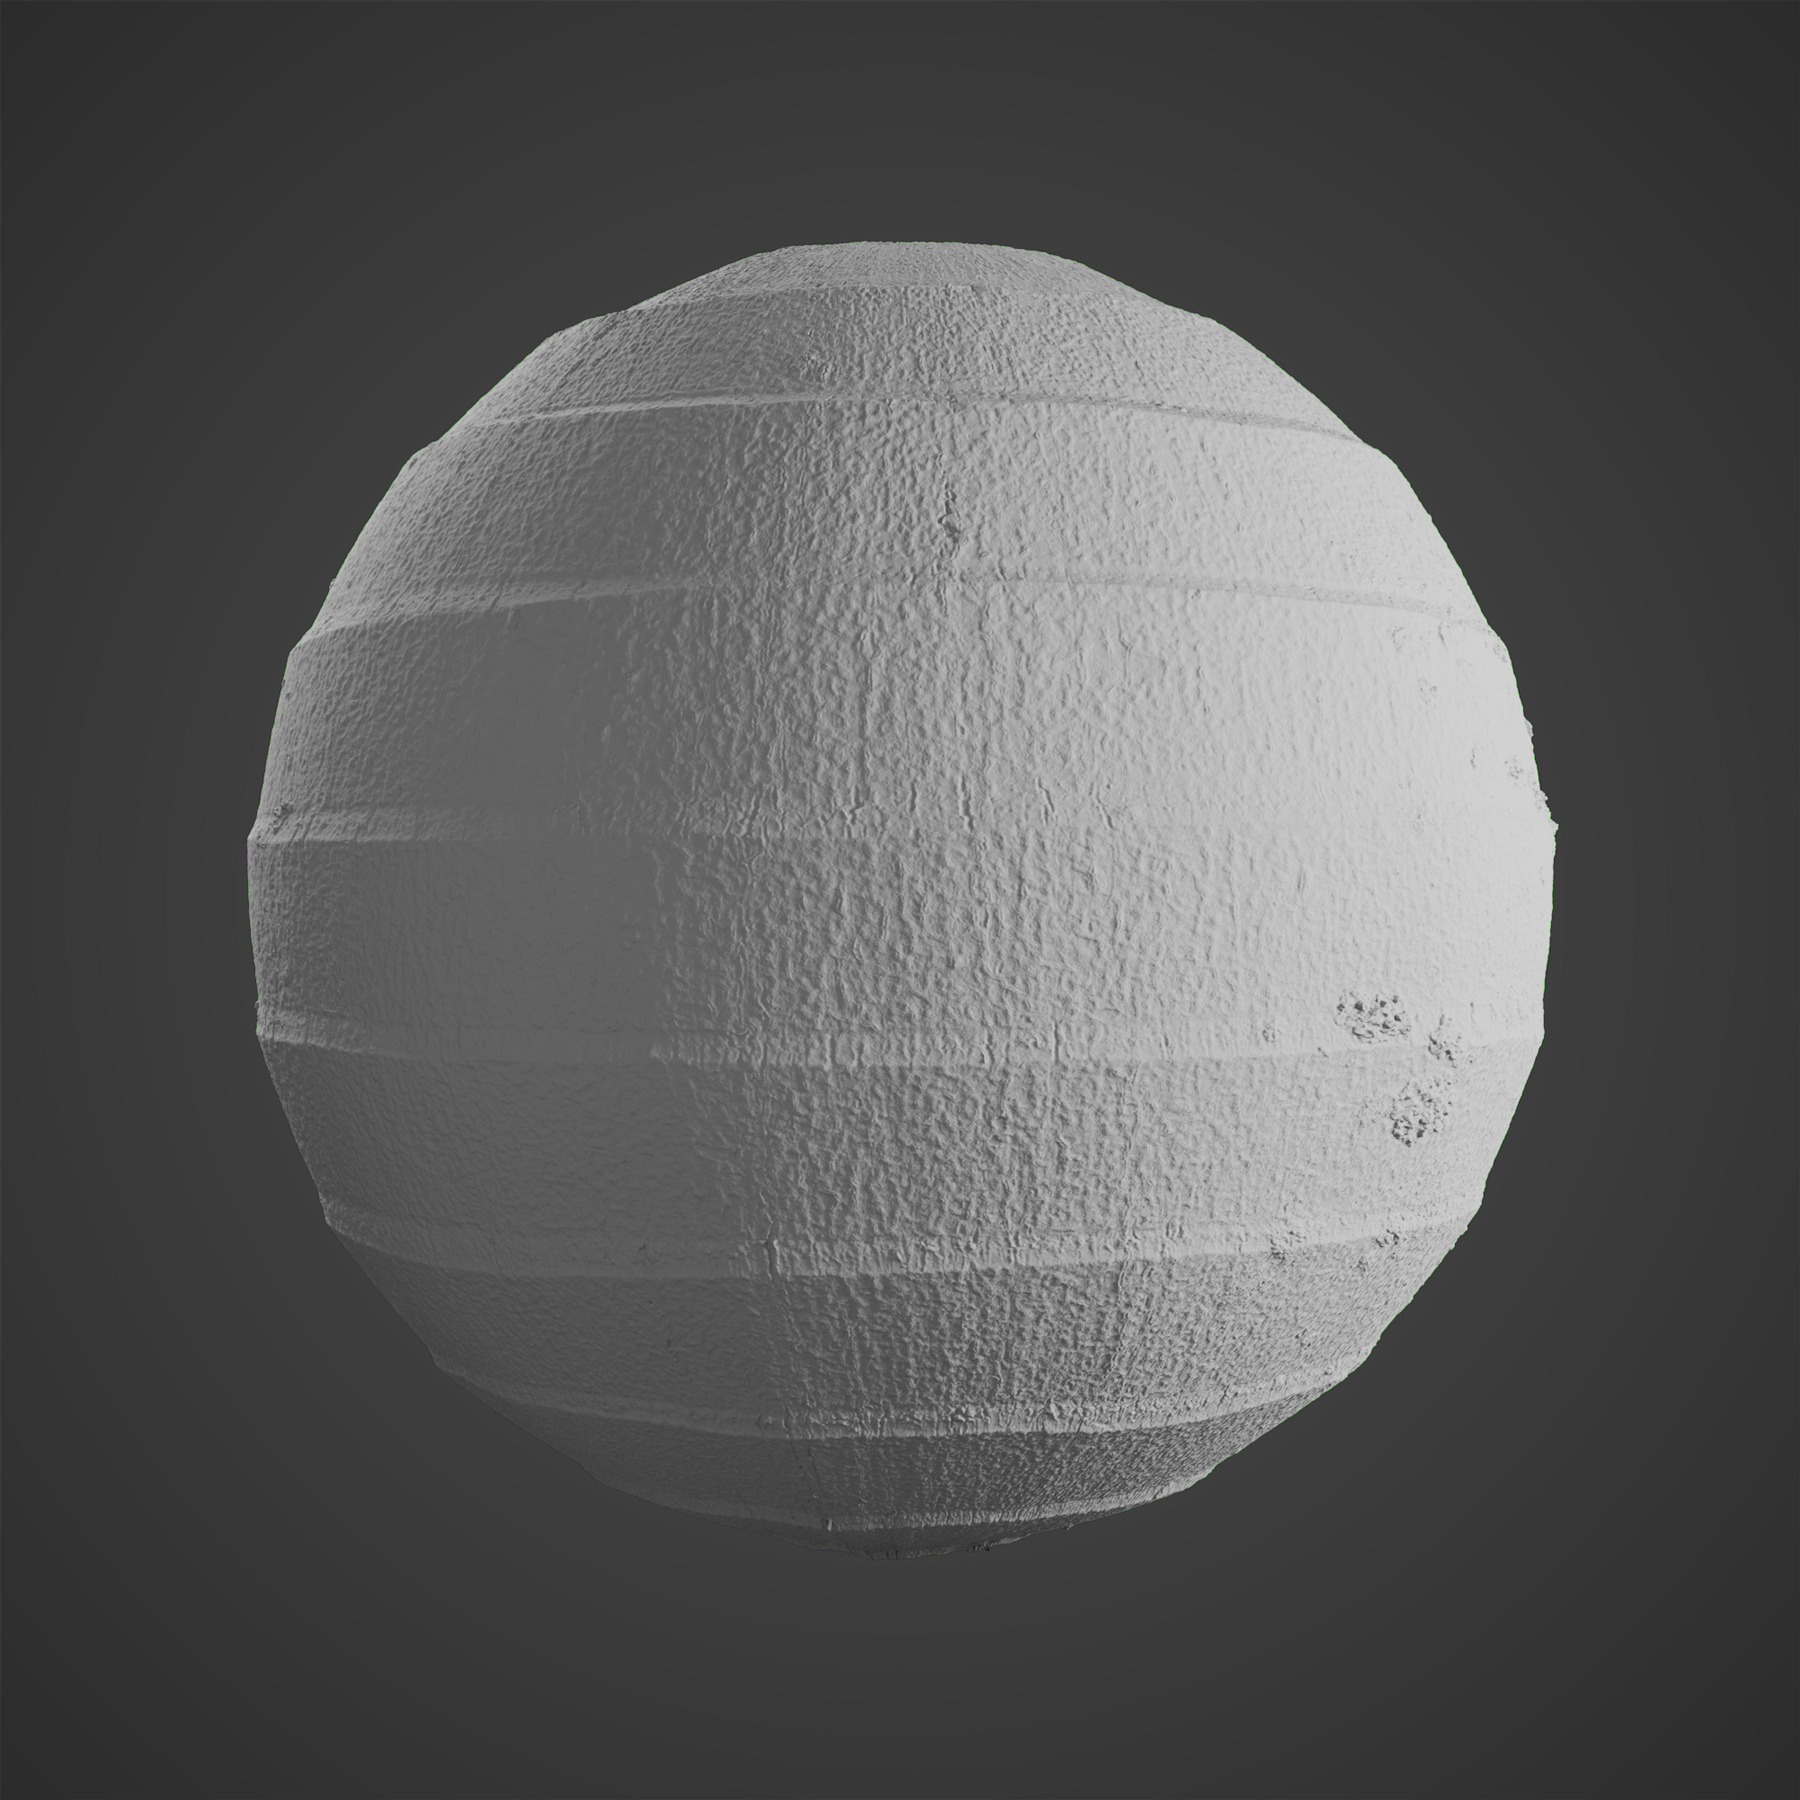 The image shows a sphere with our Palm Tree Bark texture